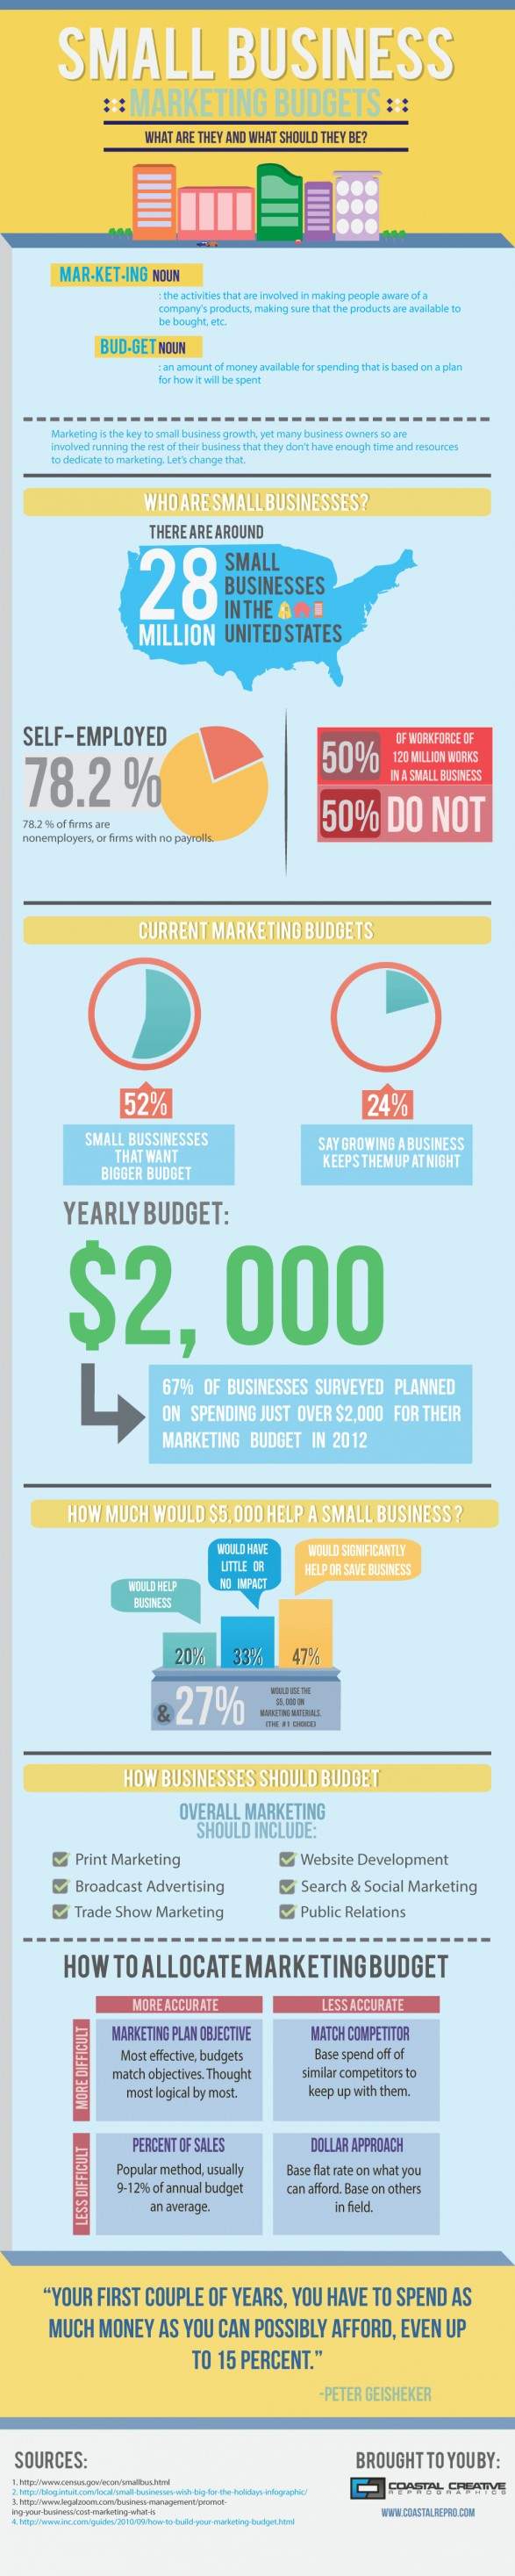 guide-to-small-business-marketing-budgets.png